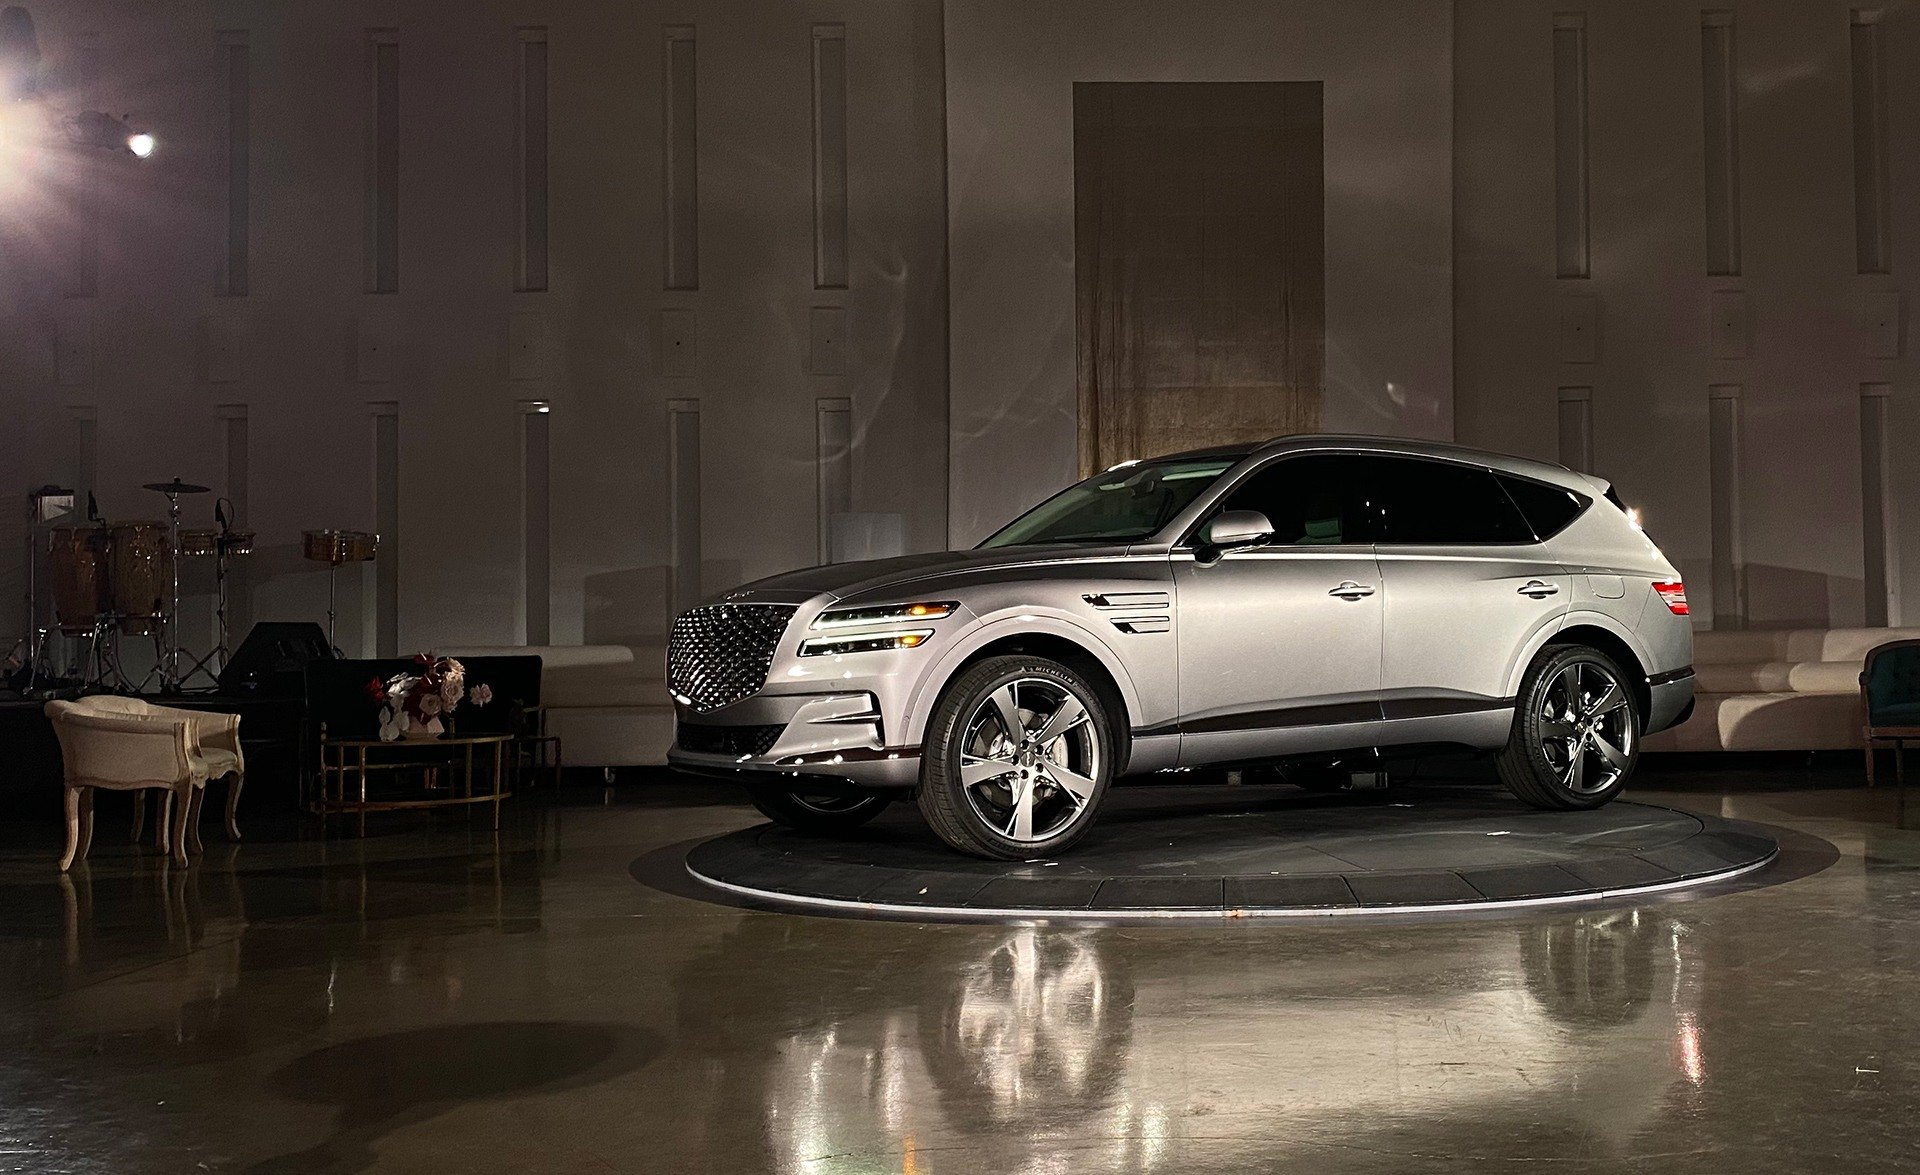 2021 Genesis Gv80 All You Need To Know About Hyundai S Premium Suv 2021 2022 Best Suv Models